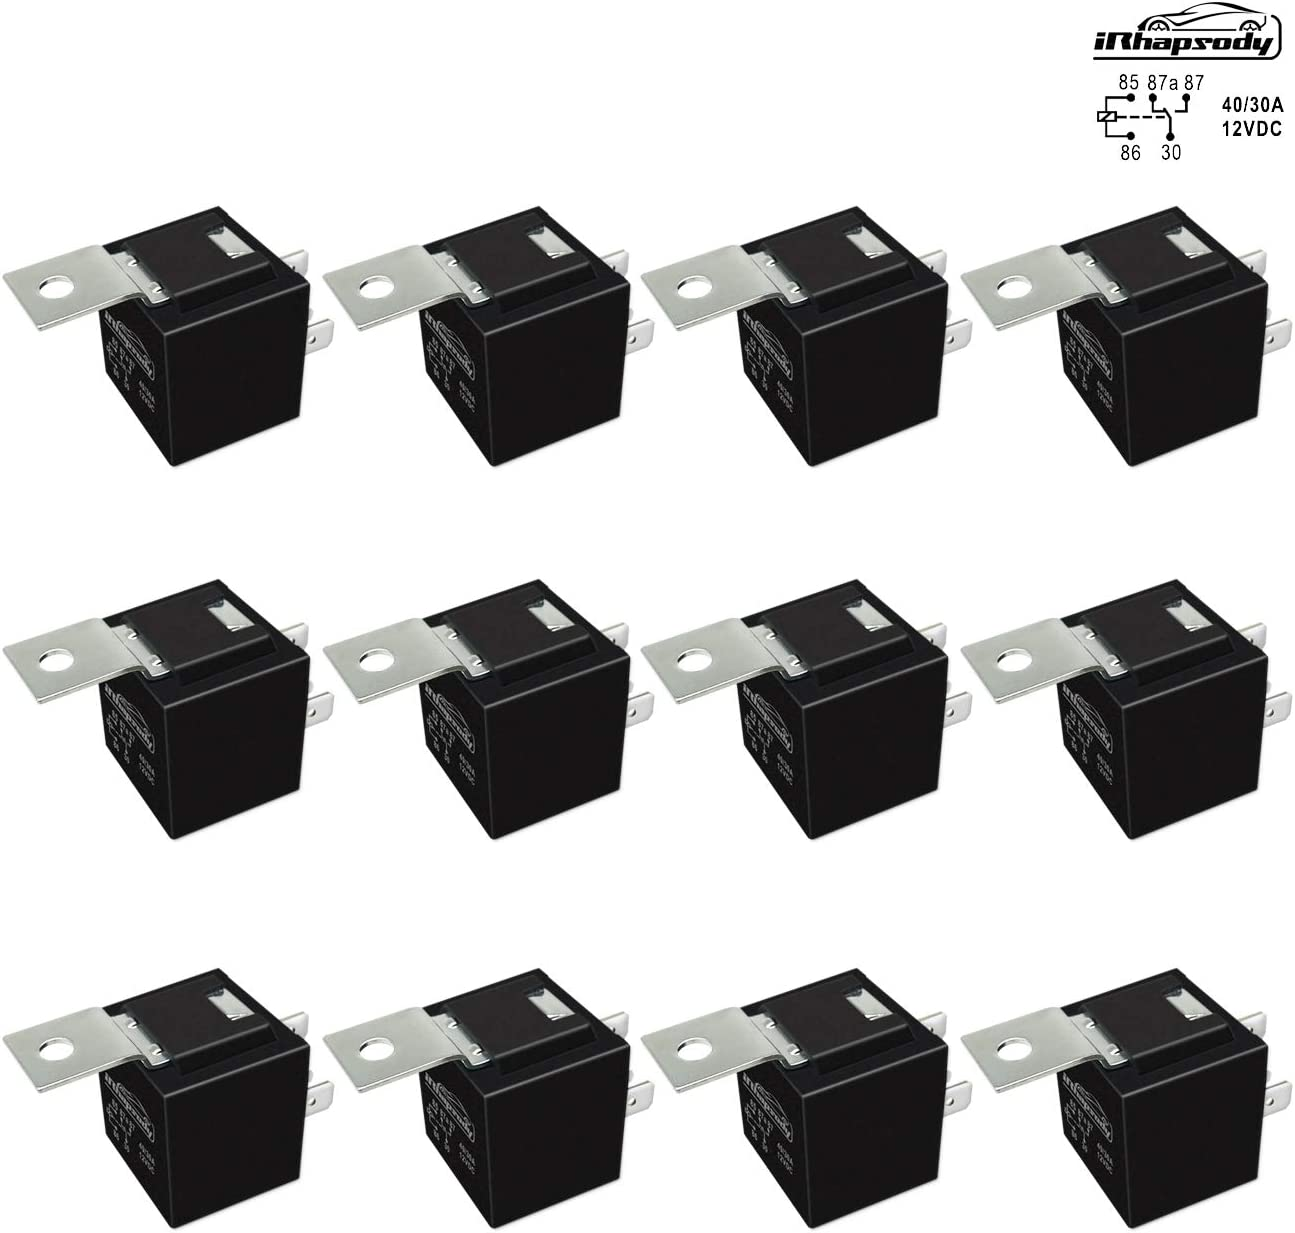 12 Pack 40/30 AMP 5 Pin SPDT 12 V DC Bosch Style Relay Switch for Electrical Automotive Truck Marine Boat (No Relay Socket and Wiring Harness)